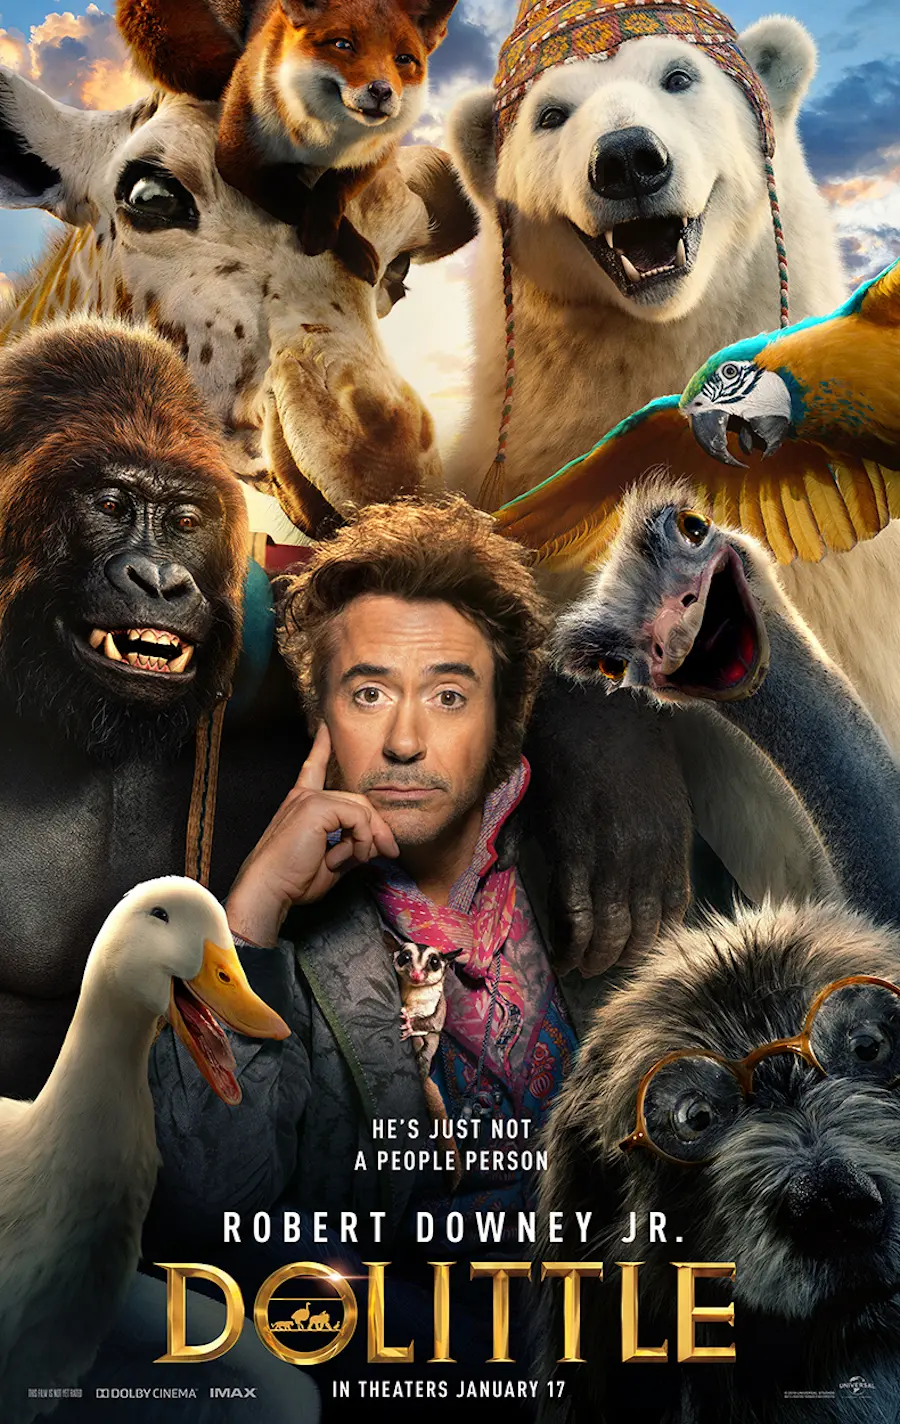 In This Dolittle Parents Guide To The Movies I M Sharing A Spoiler Free Review And Parental Guide For This Ma In 2020 Free Movies Online Dr Dolittle Robert Downey Jr